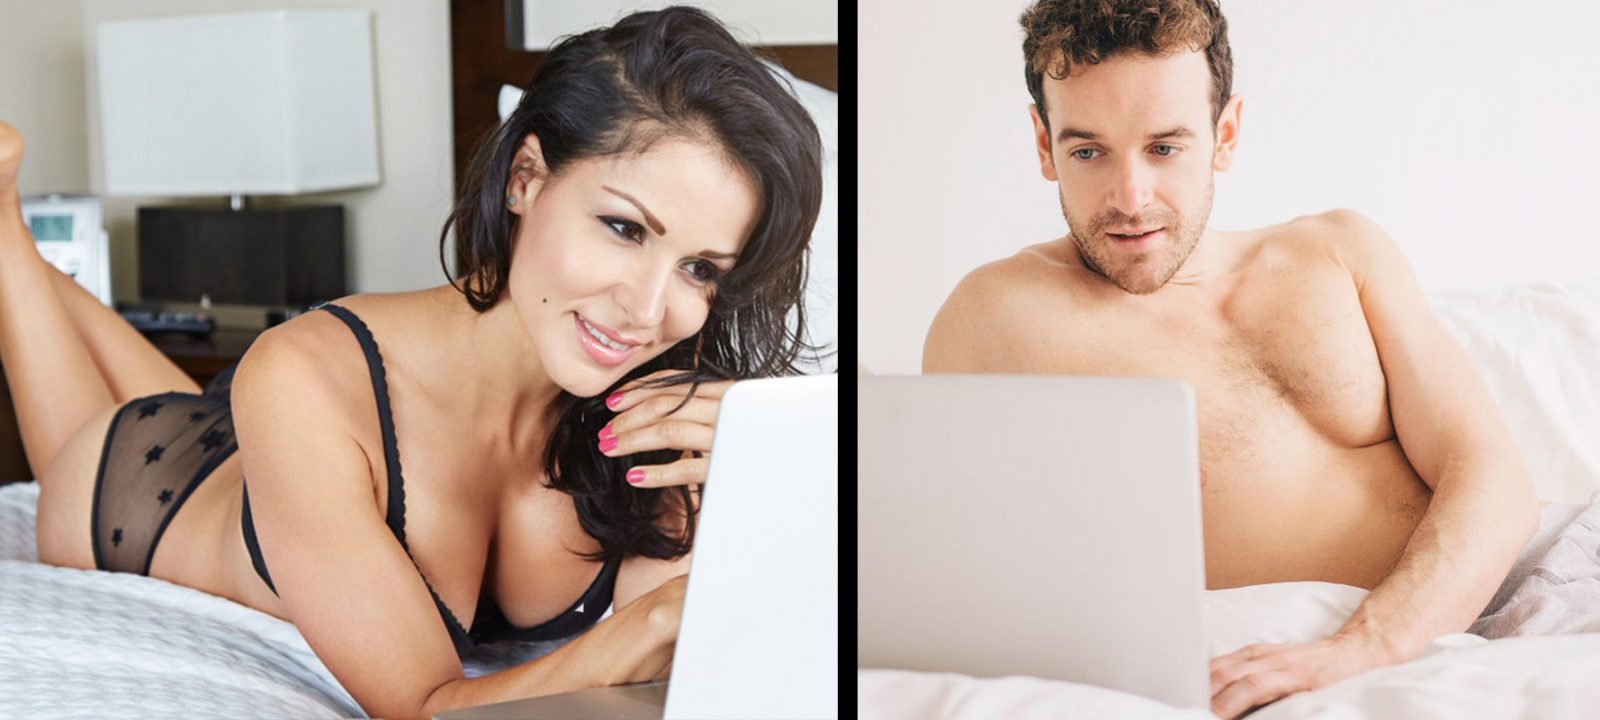 Long-Distance Sex - 10 Ways to Make Love in an LDR